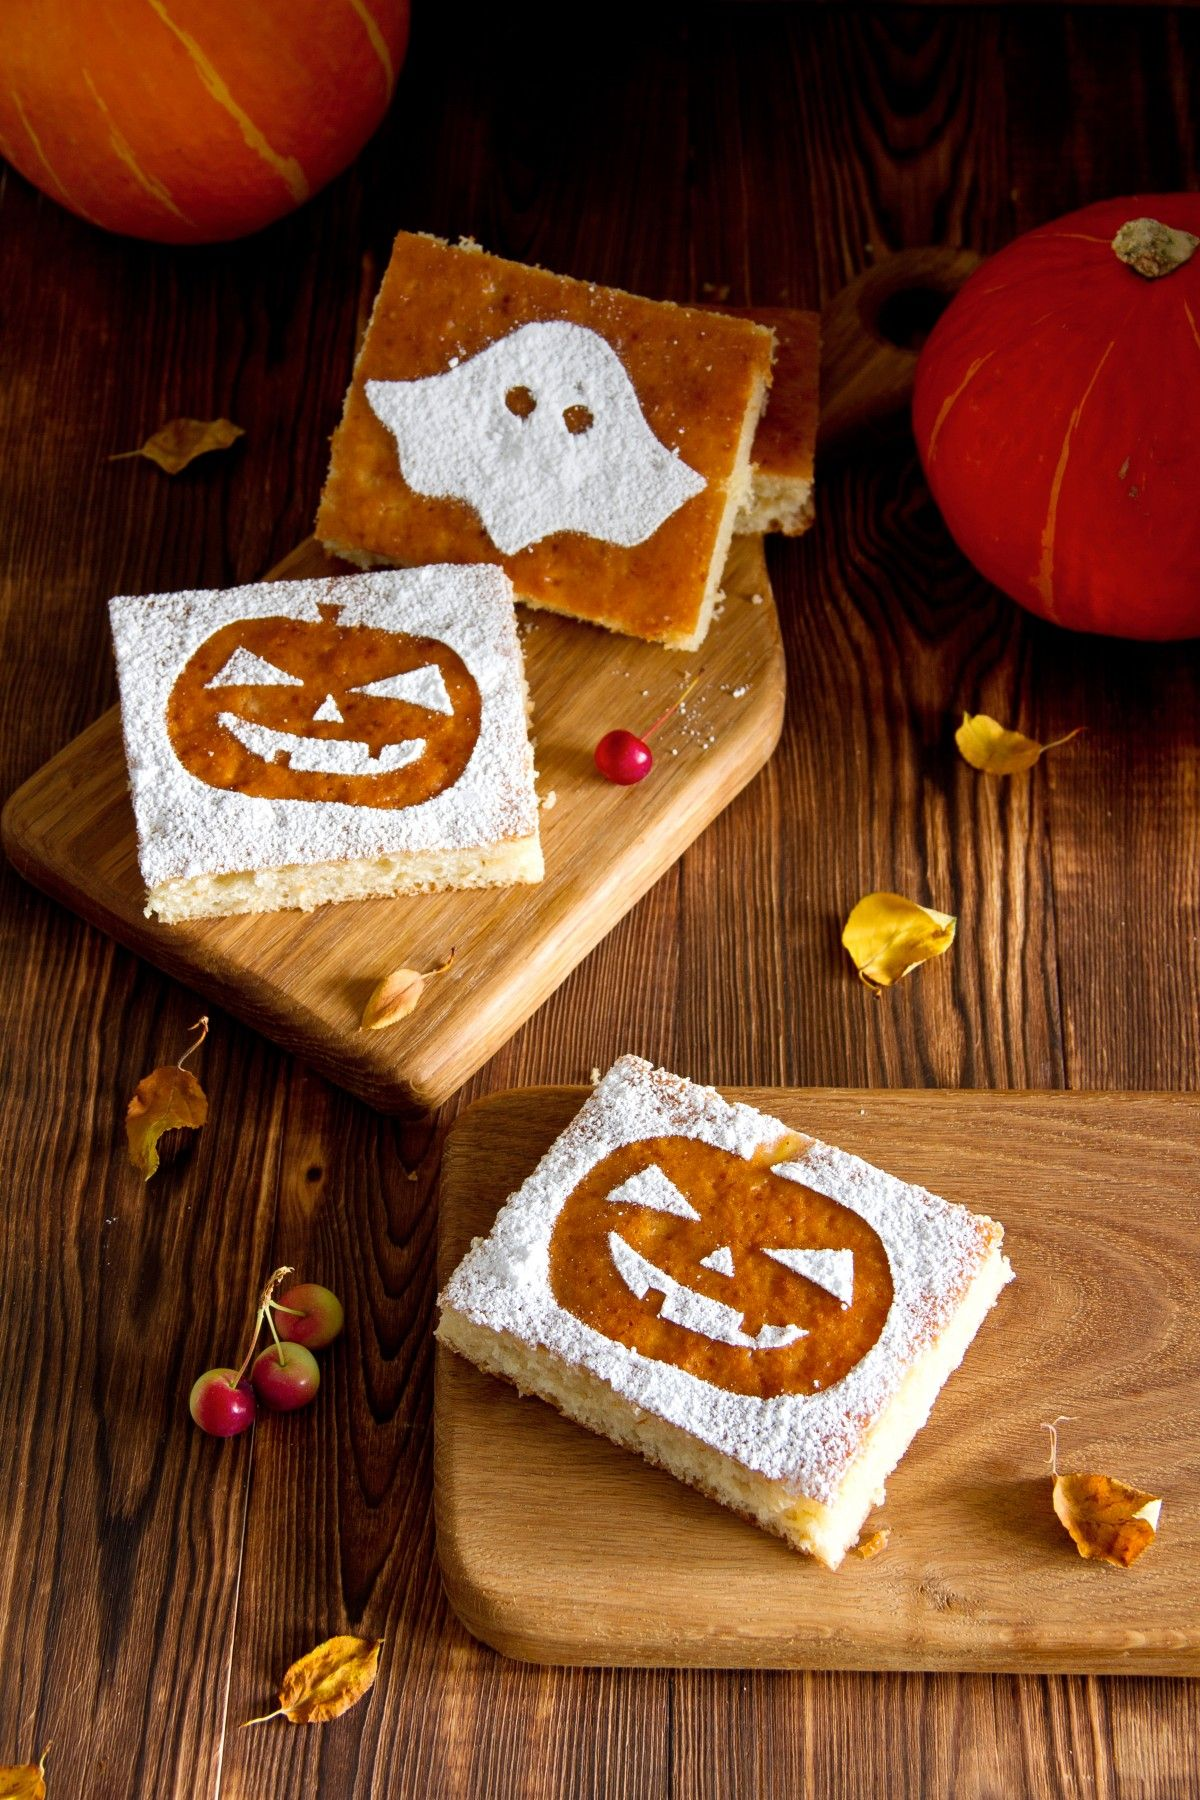 Tasty Halloween Crafts Using Stencils For Cookie Decorating